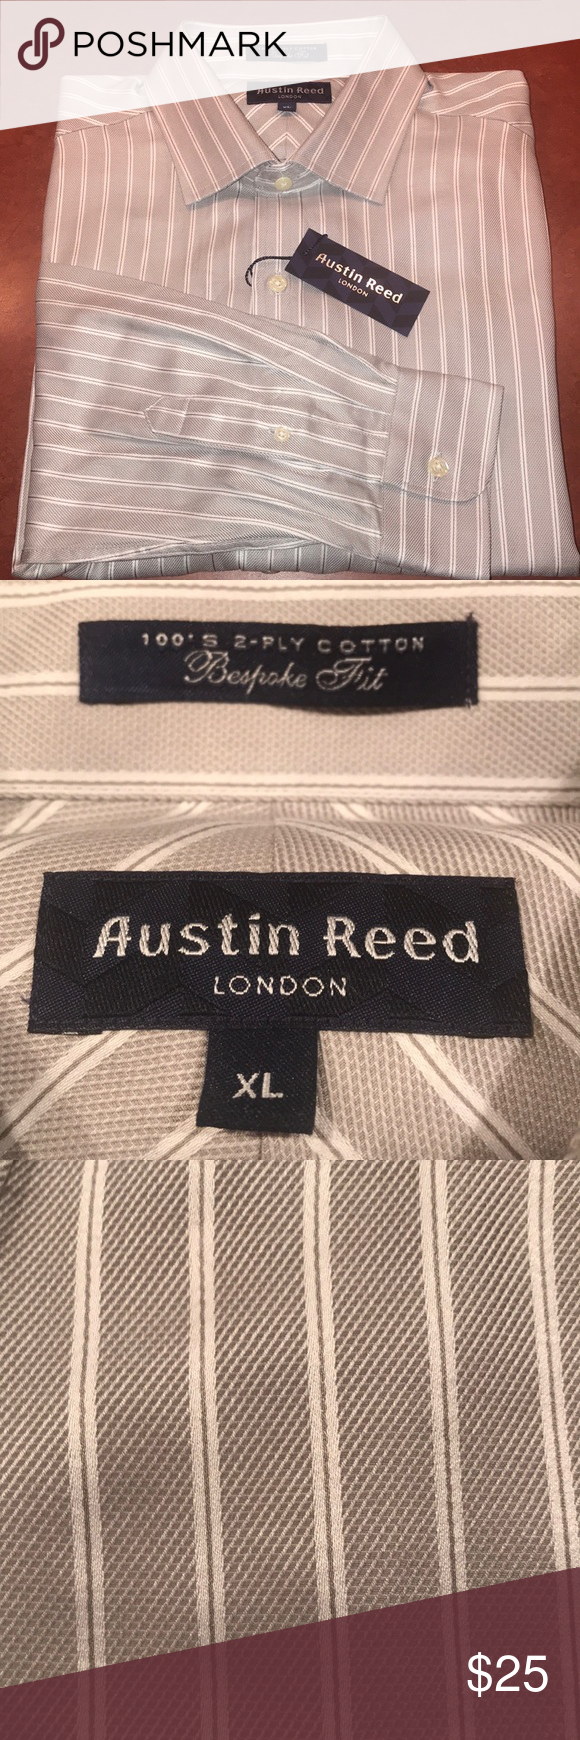 Austin Reed London Men S Button Dress Shirt Xl New With Tag S Original Price Was 89 50 Size Extra Large Long Sleeve Gray And Austin Reed Button Dress Shirts